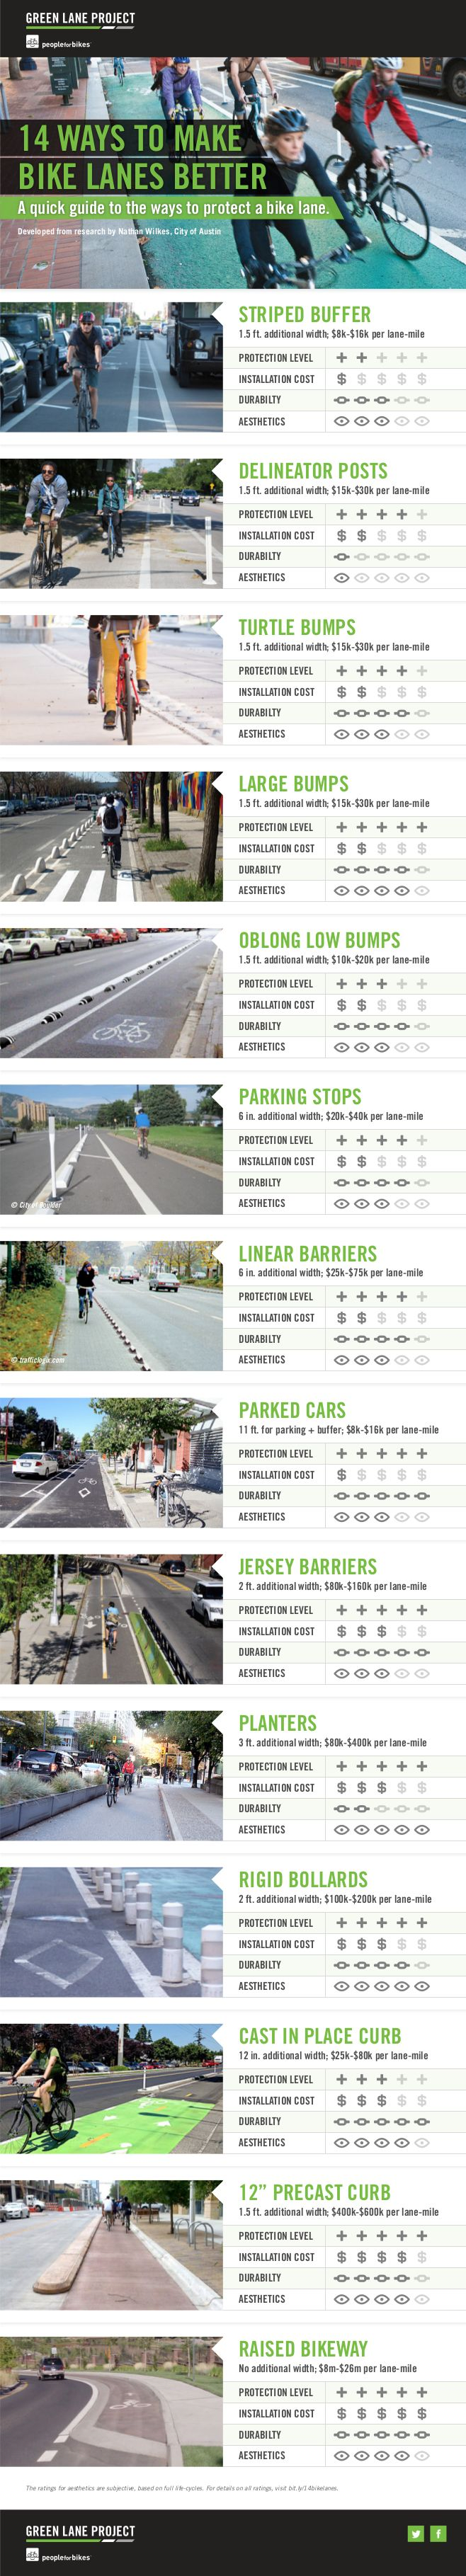 Varieties of bike divider compared, via @peopleforbikes. Visit the Streets for Everyone board